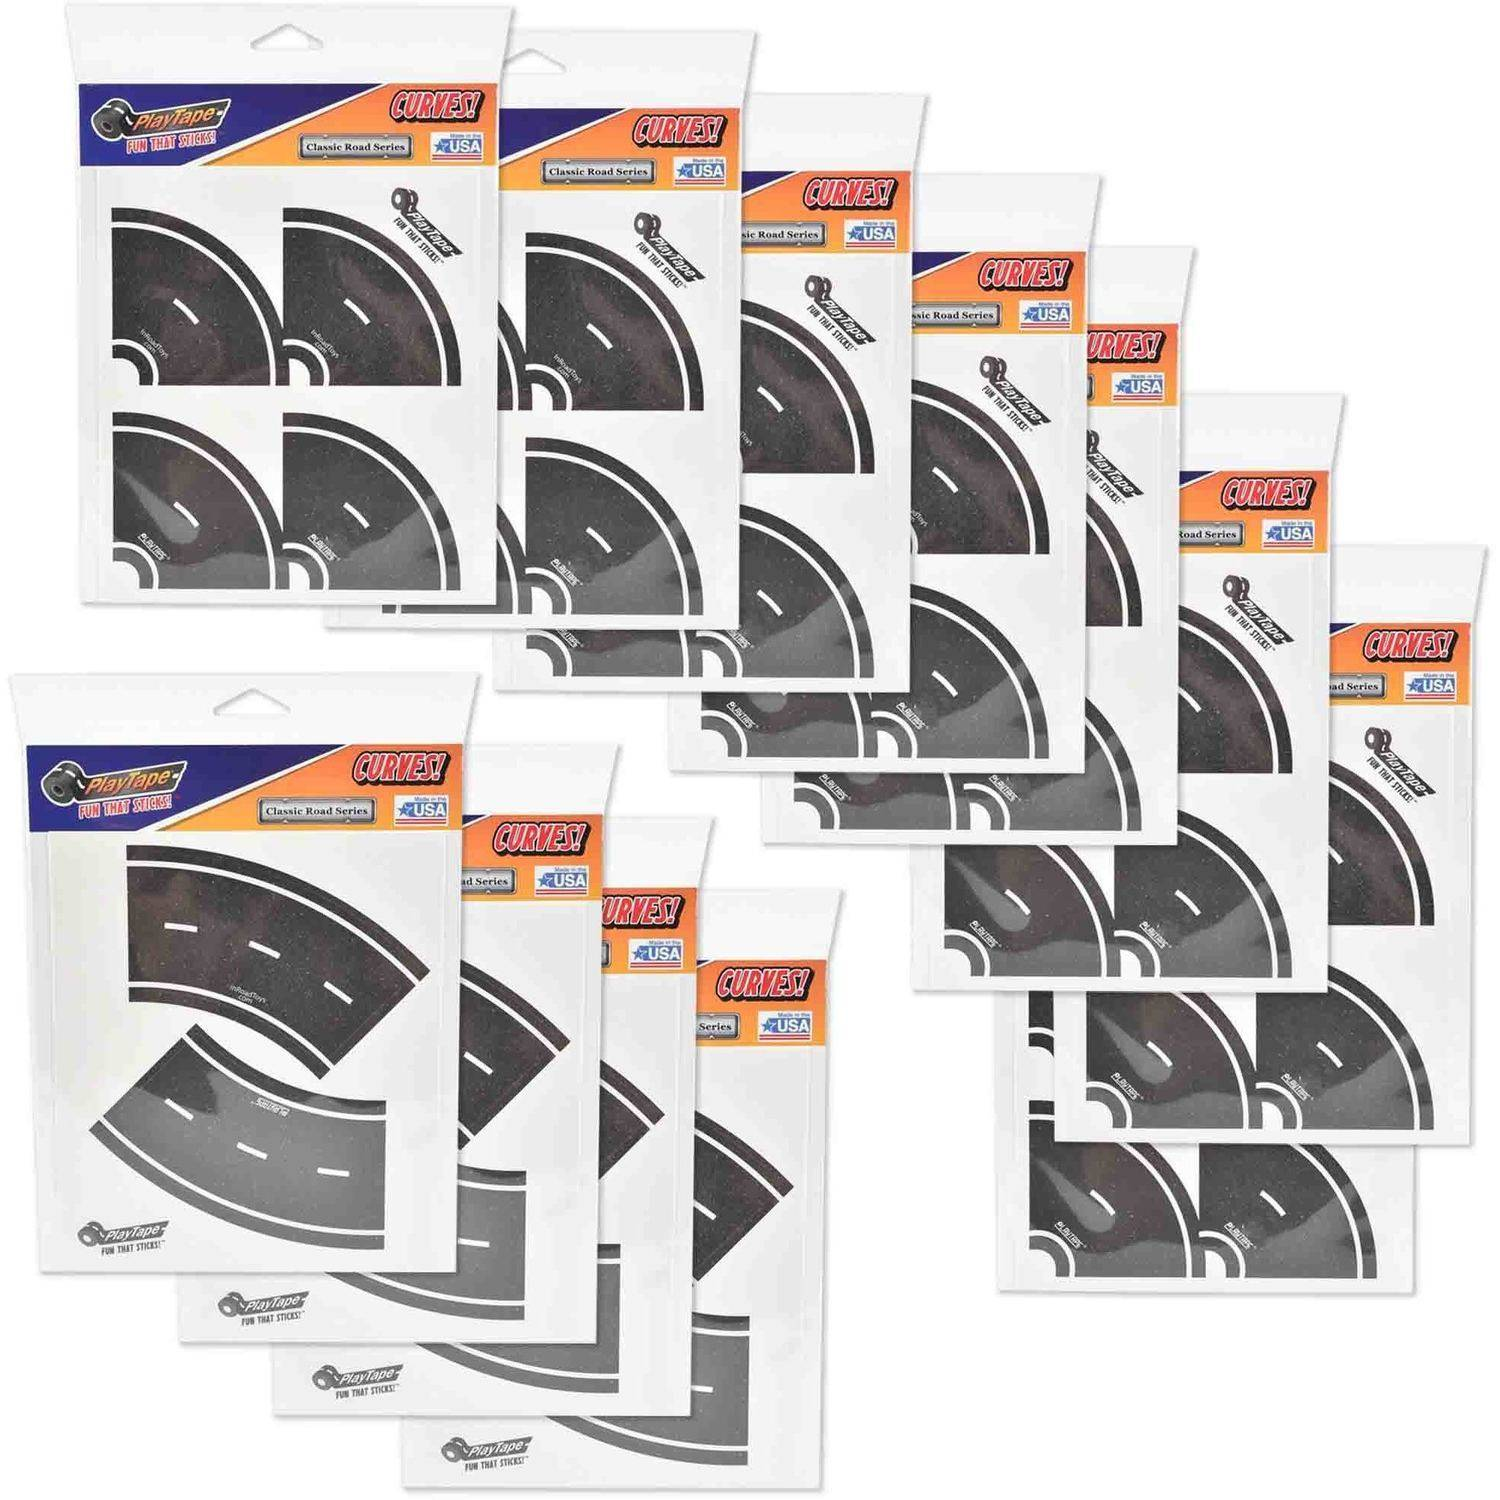 "PlayTape Classic Road Series Bundle 2"" Tight Curves, Full Case with 96 Curves"